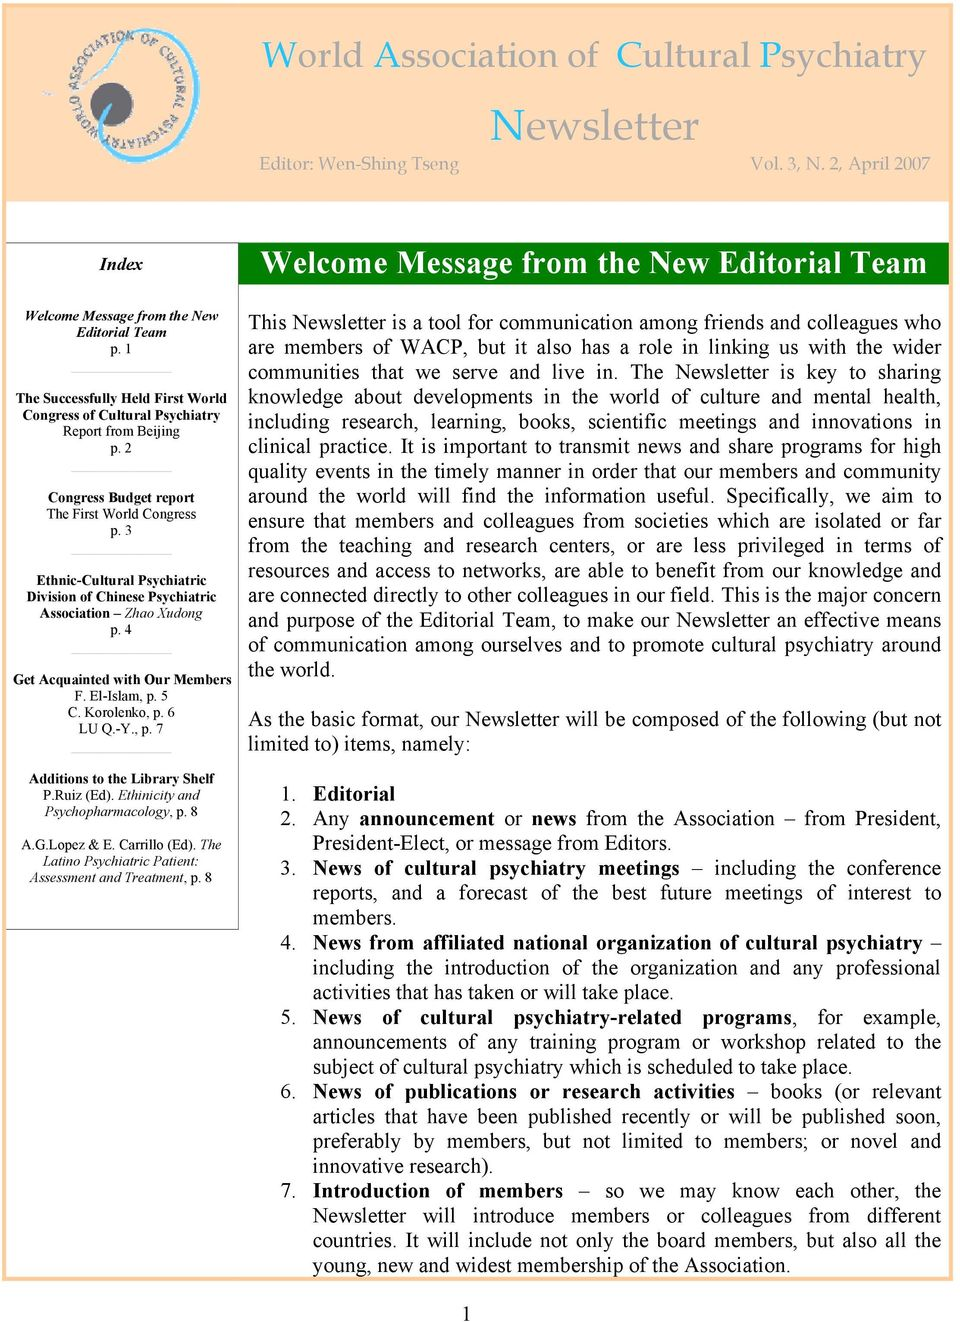 3 Ethnic-Cultural Psychiatric Division of Chinese Psychiatric Association Zhao Xudong p. 4 Get Acquainted with Our Members F. El-Islam, p. 5 C. Korolenko, p. 6 LU Q.-Y., p. 7 Additions to the Library Shelf P.